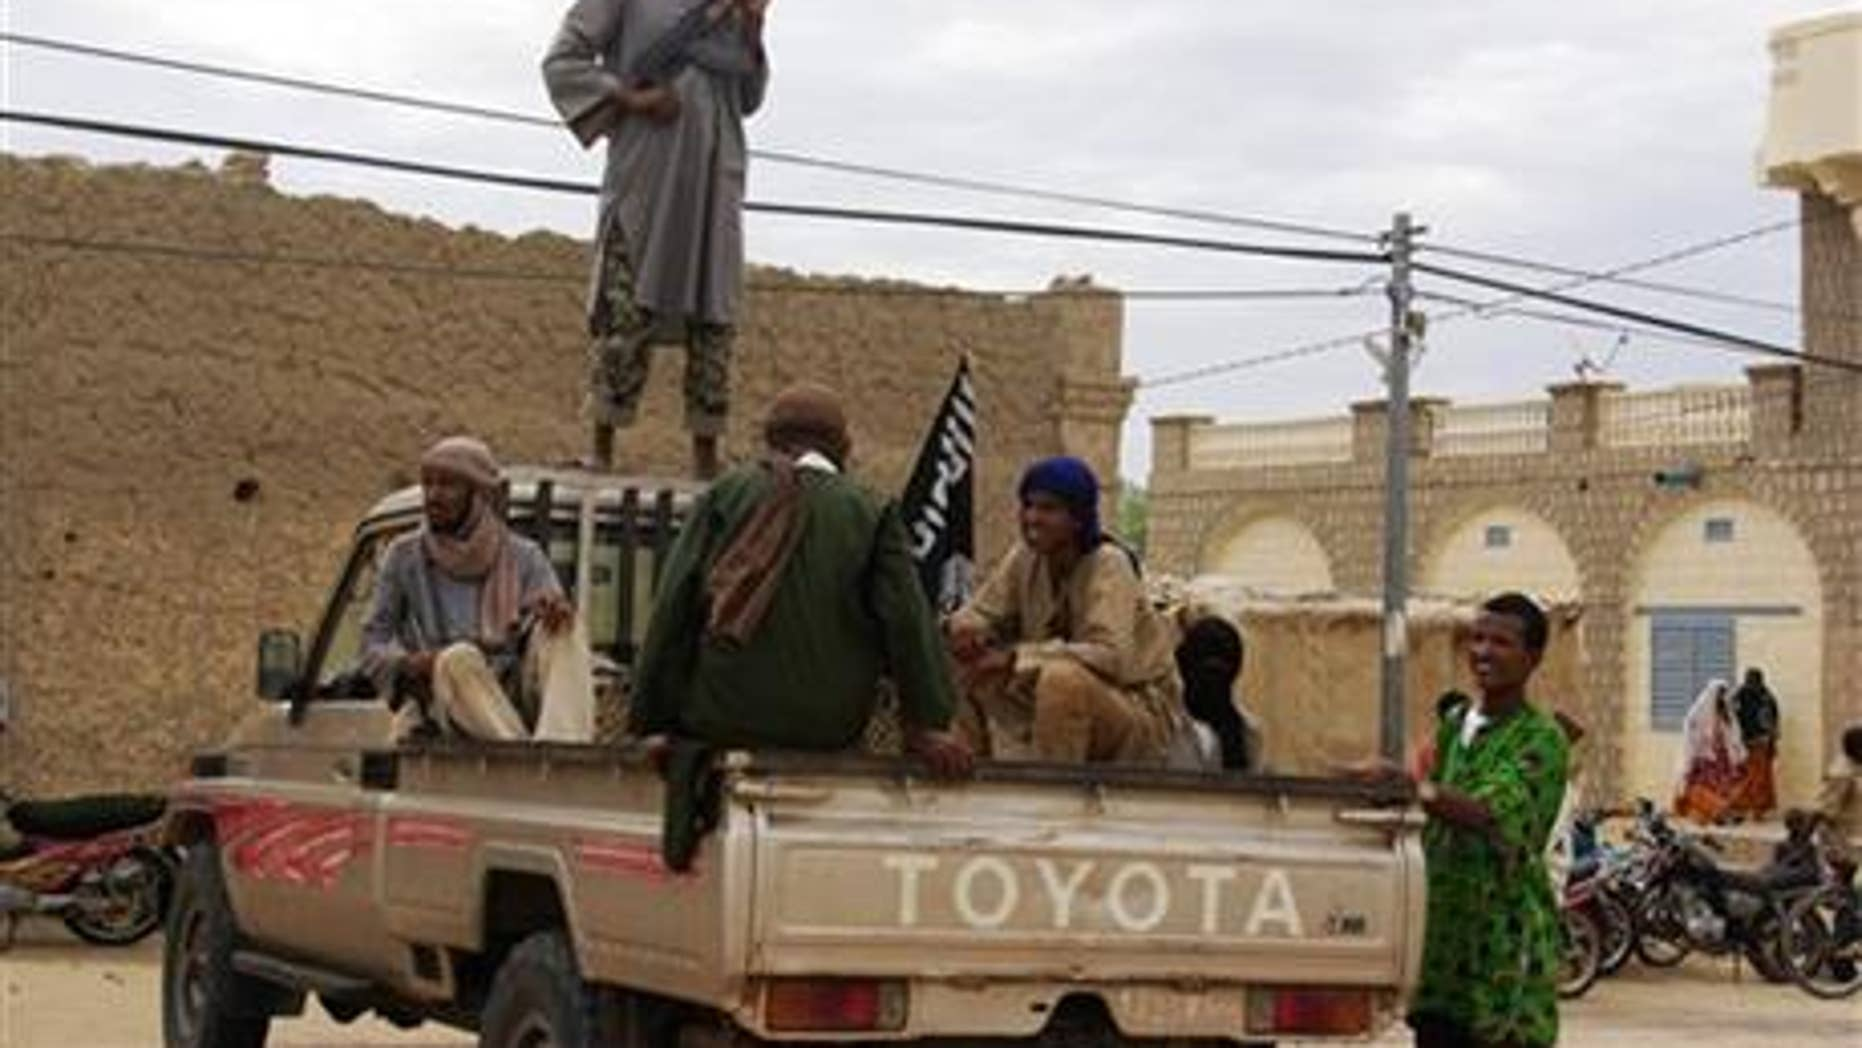 Aug. 31, 2012: Fighters from the Al-Qaeda-linked Islamist group Ansar Dine stand guard in Timbuktu, Mali.